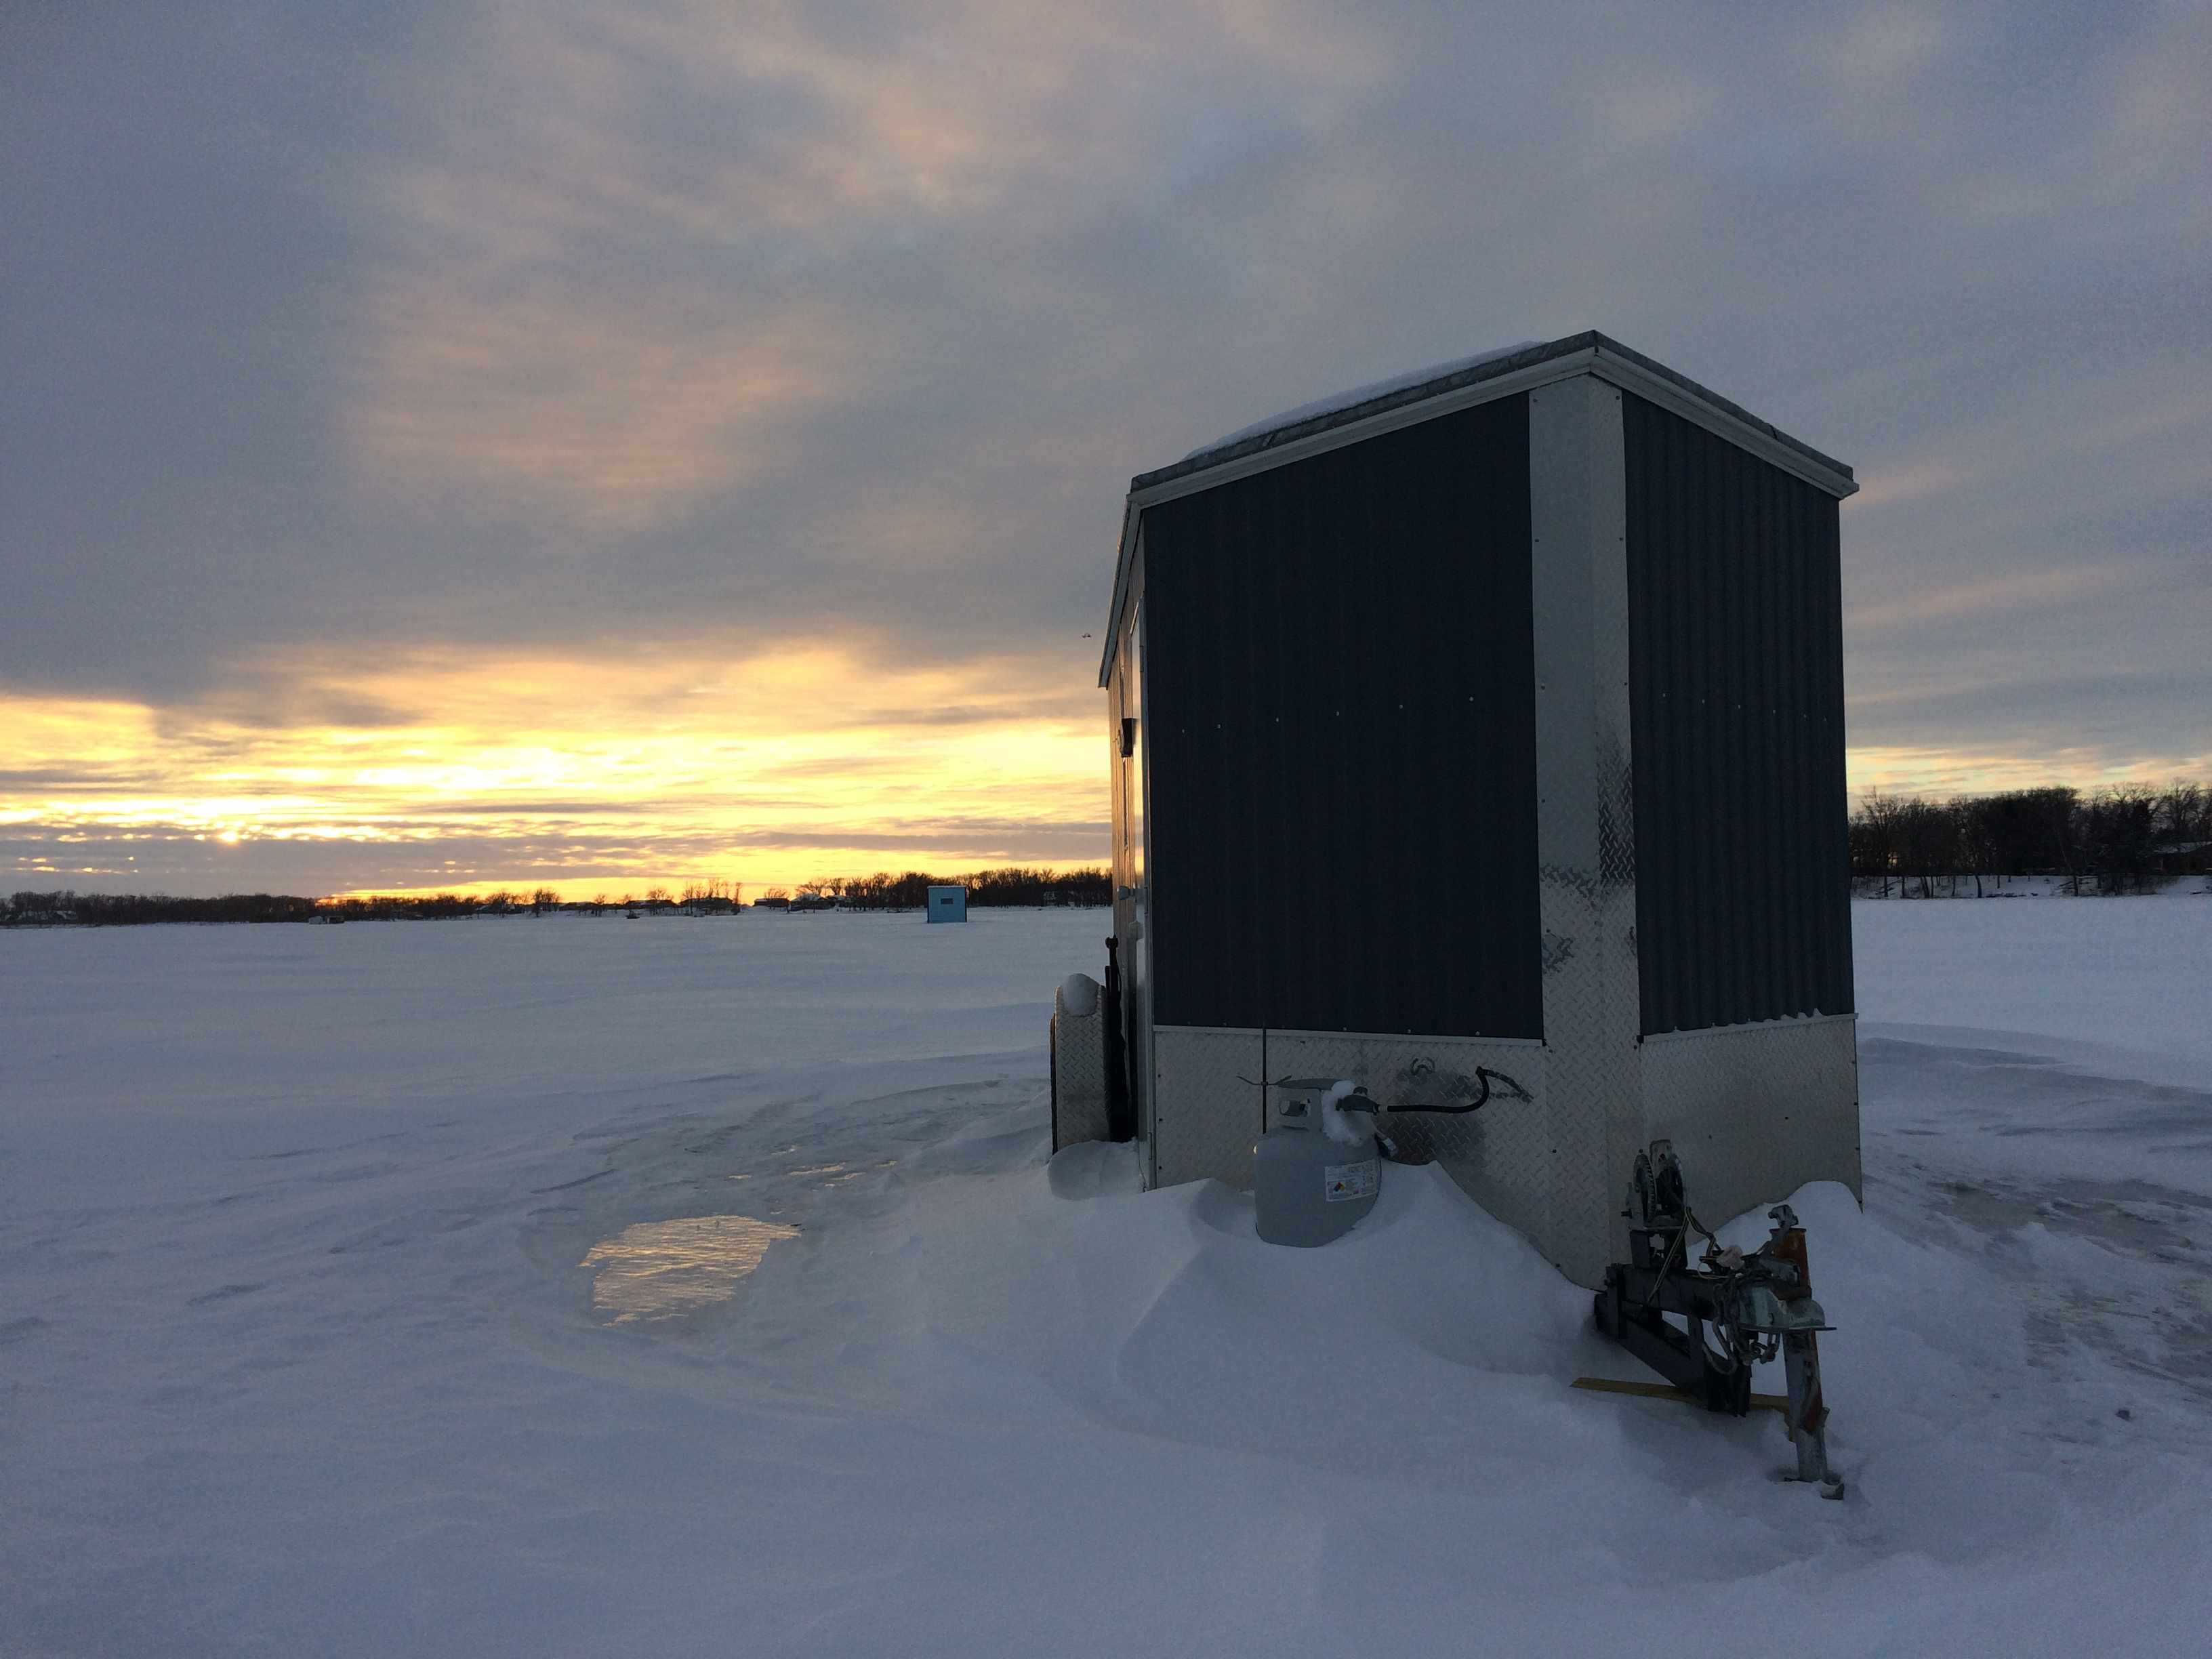 sunset on a frozen lake with ice fishing house in foreground